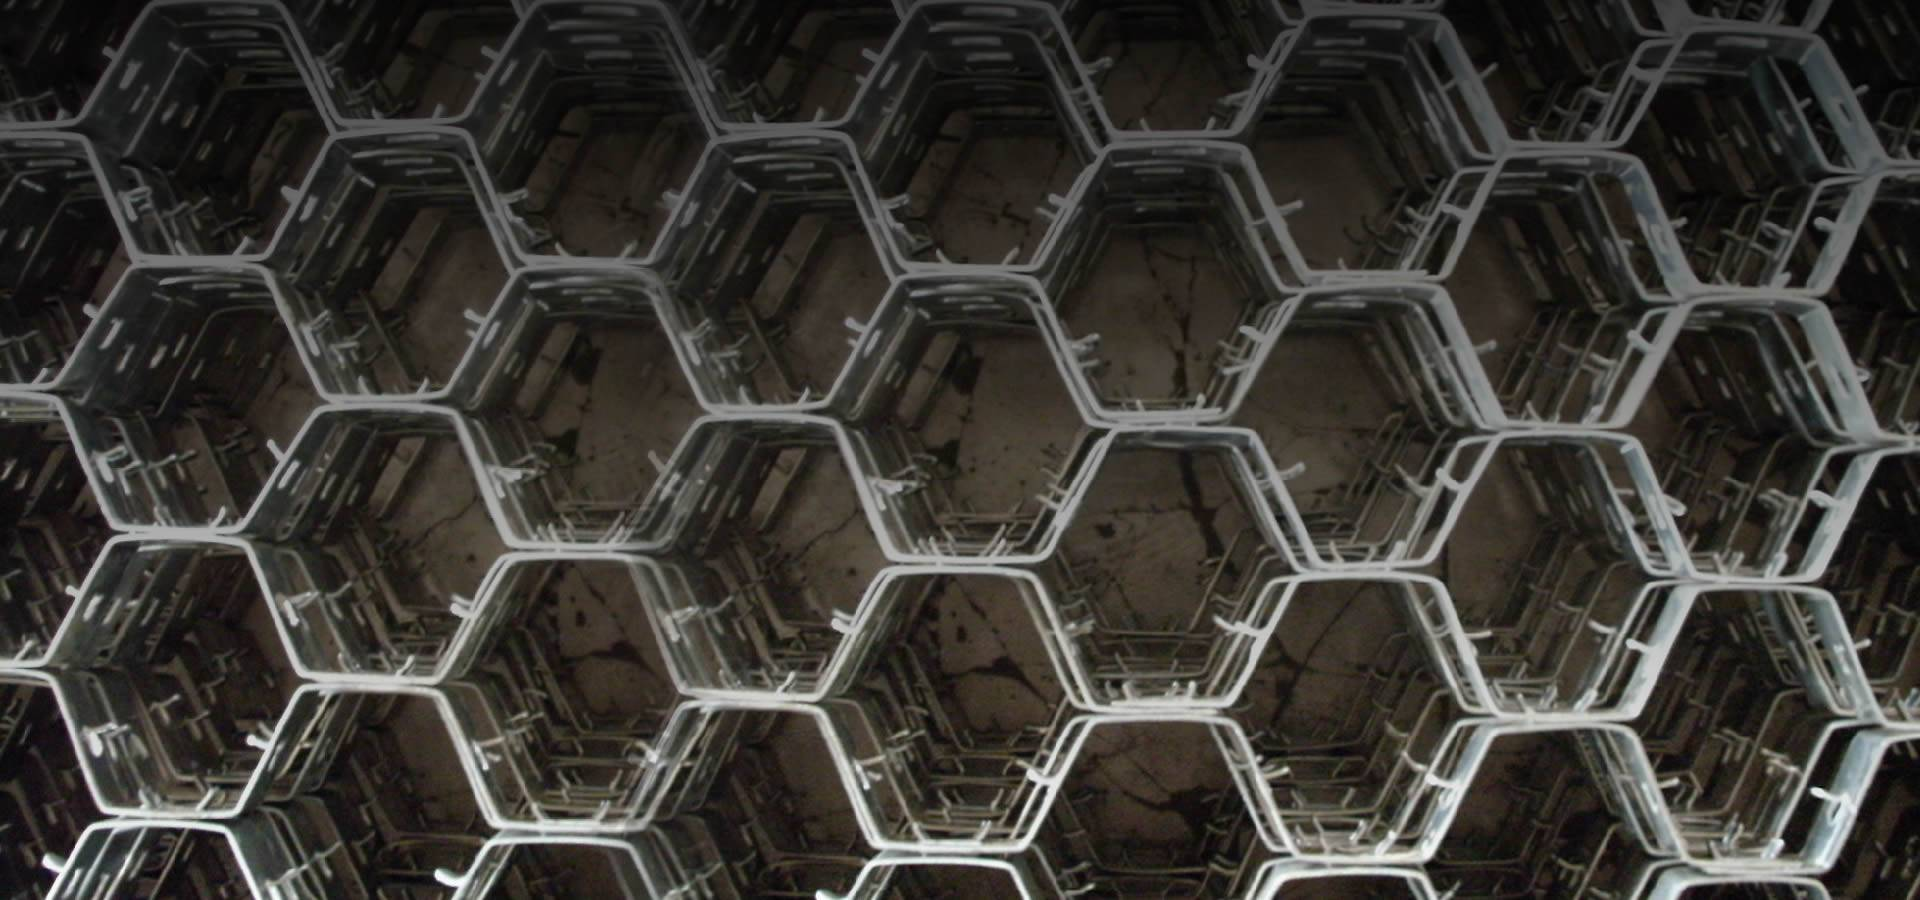 The picture shows metal hex grid.